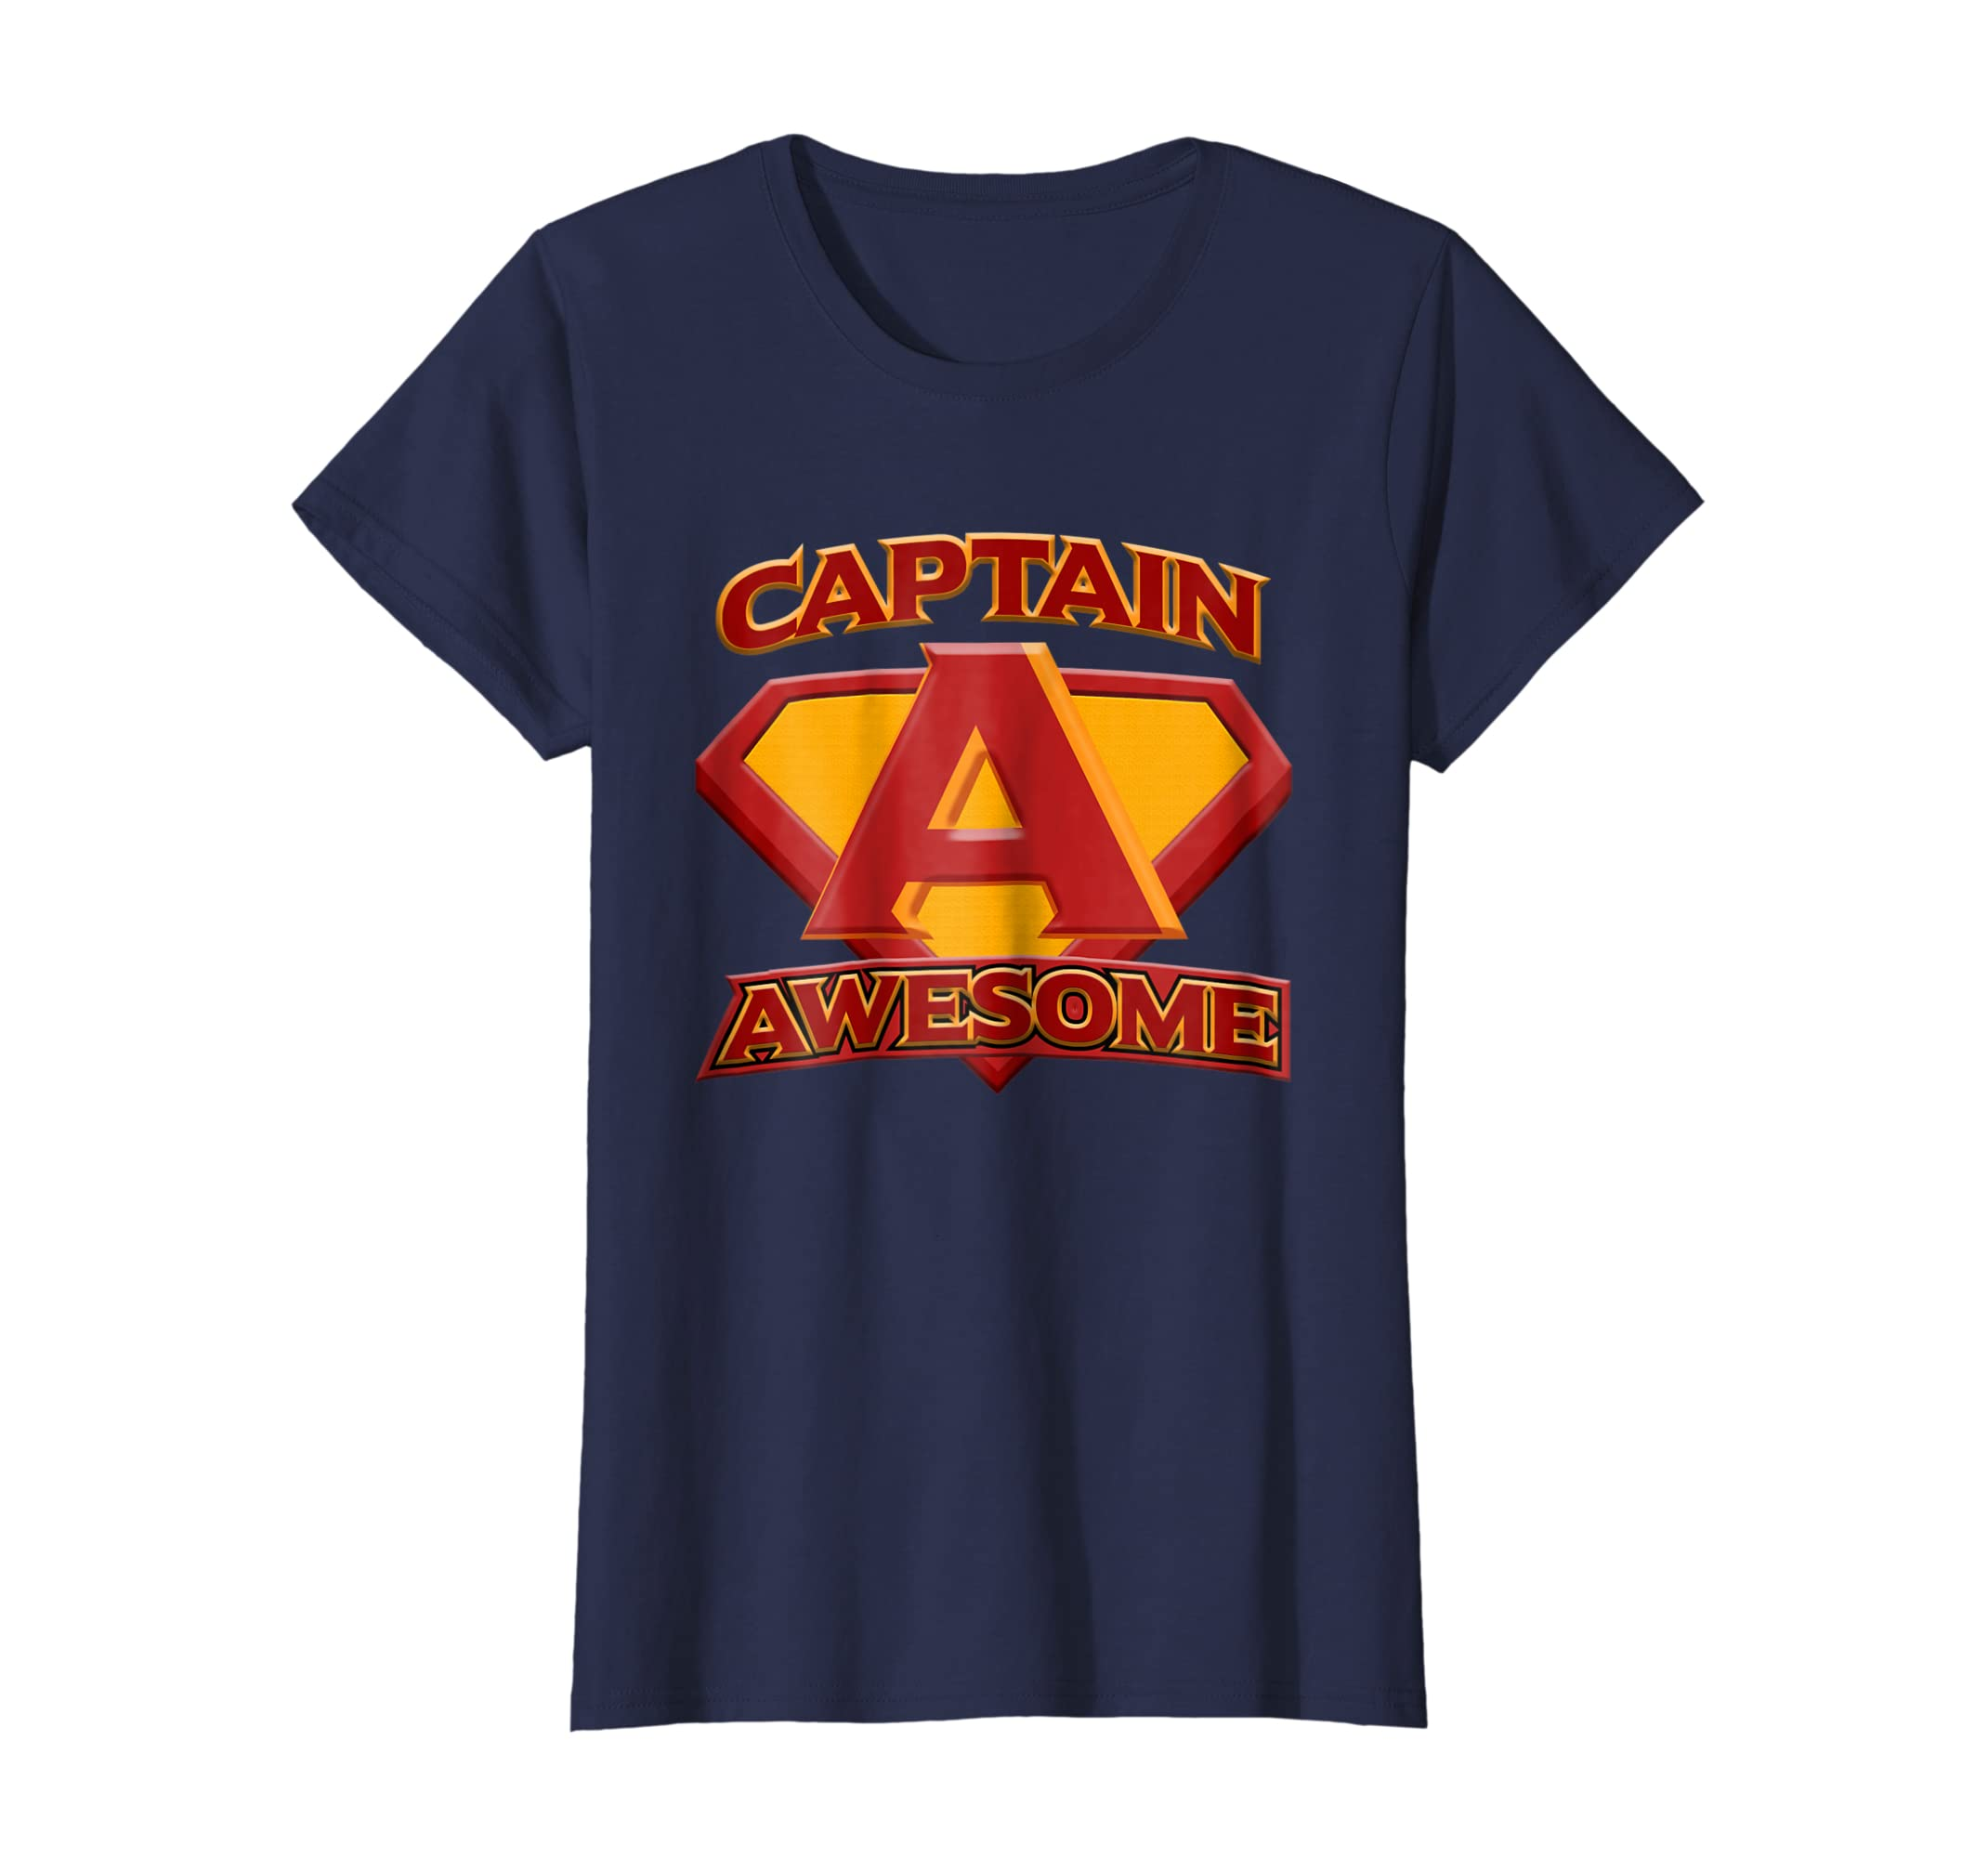 04d0b4b7 Amazon.com: Funny t shirt, Captain AWESOME: Clothing